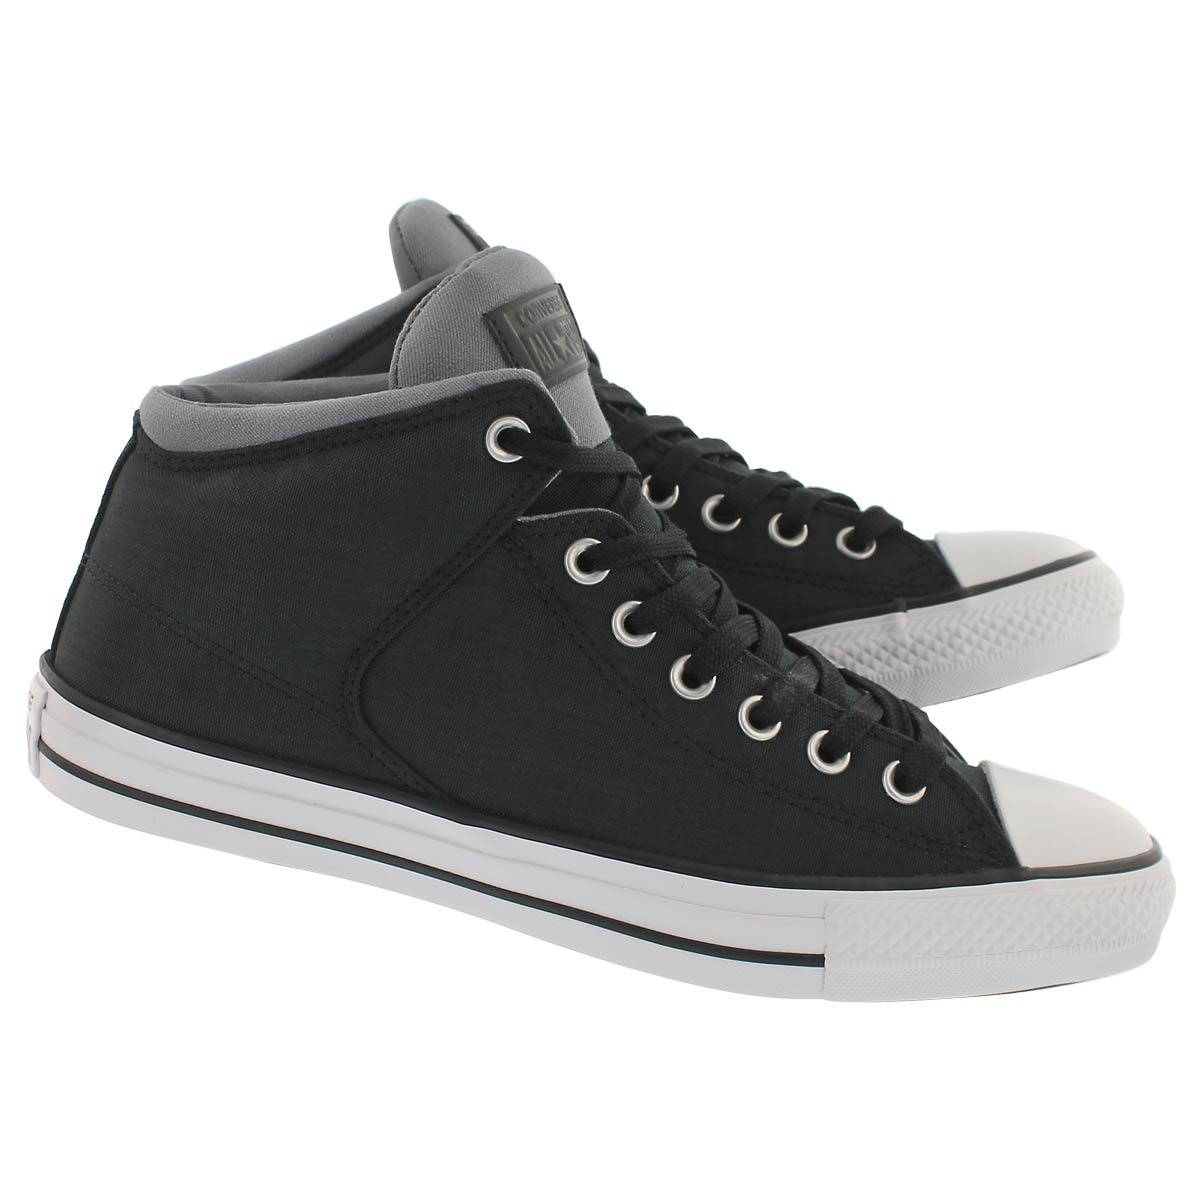 Mns CT A/S High Street Hi Cord blk snkr